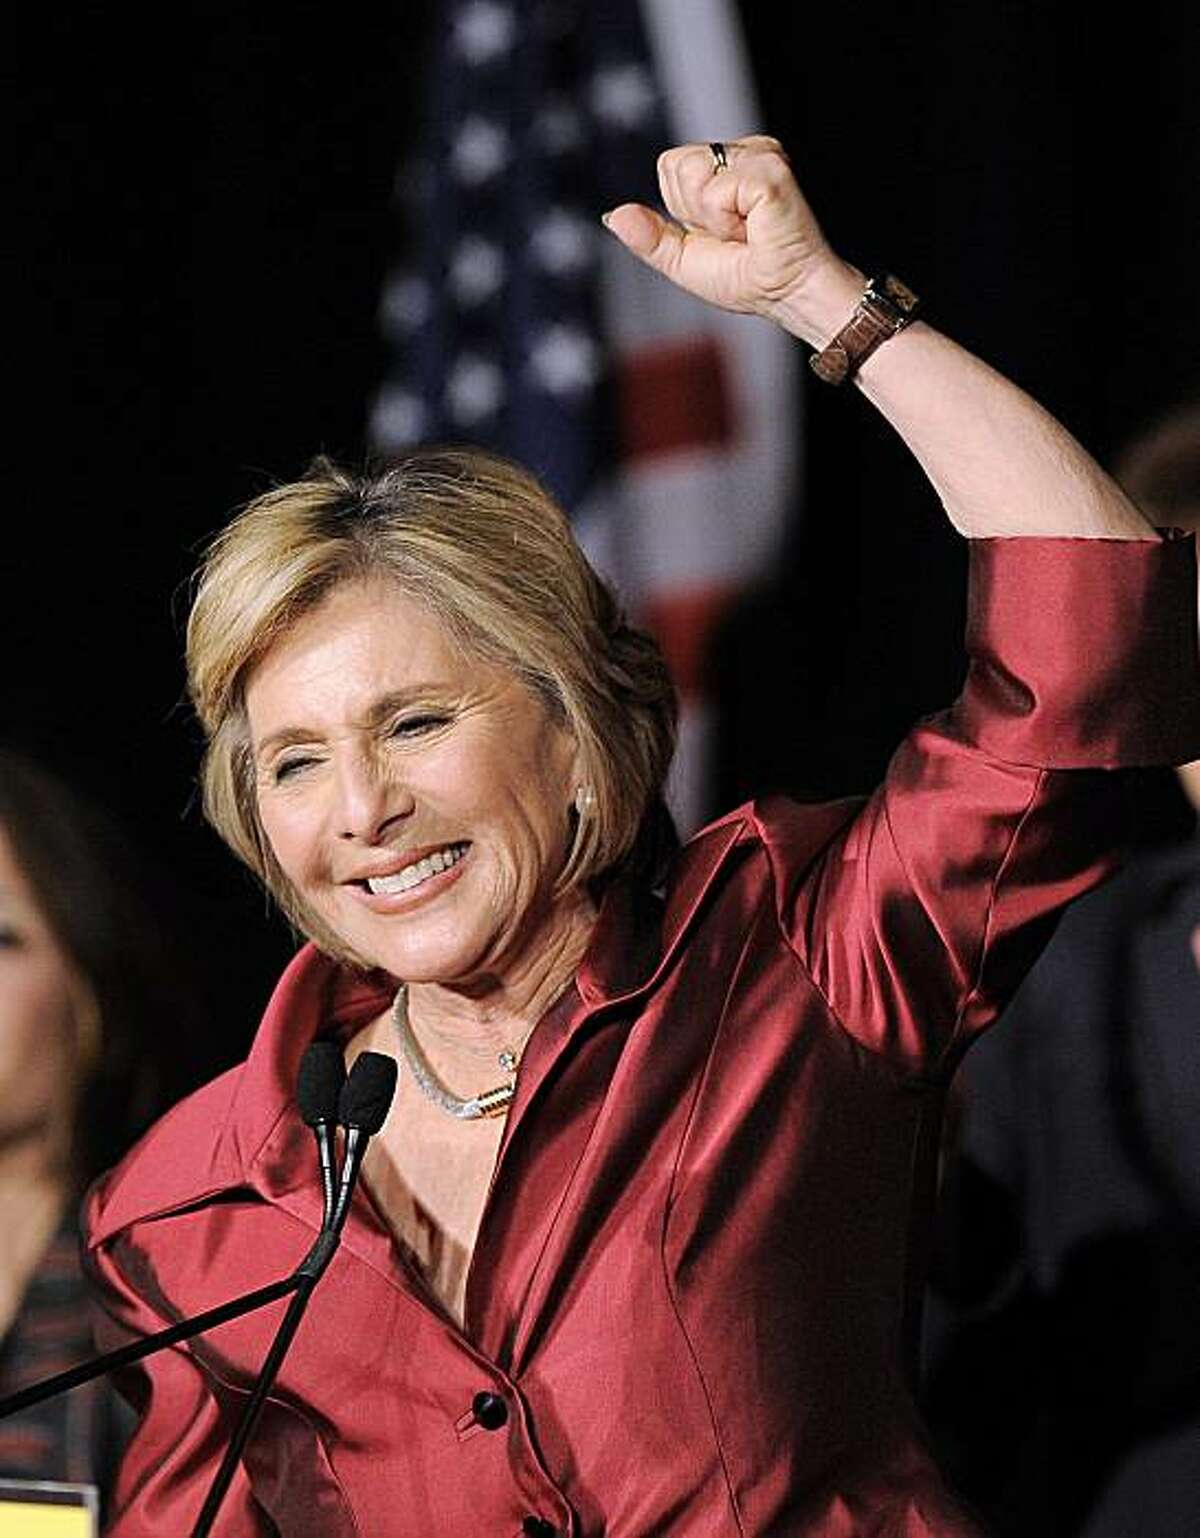 Sen. Barbara Boxer, D-Calif., waves to supporters winning re-election in her race against Calry Fiorina, Tuesday, Nov. 2, 2010, in Los Angeles.